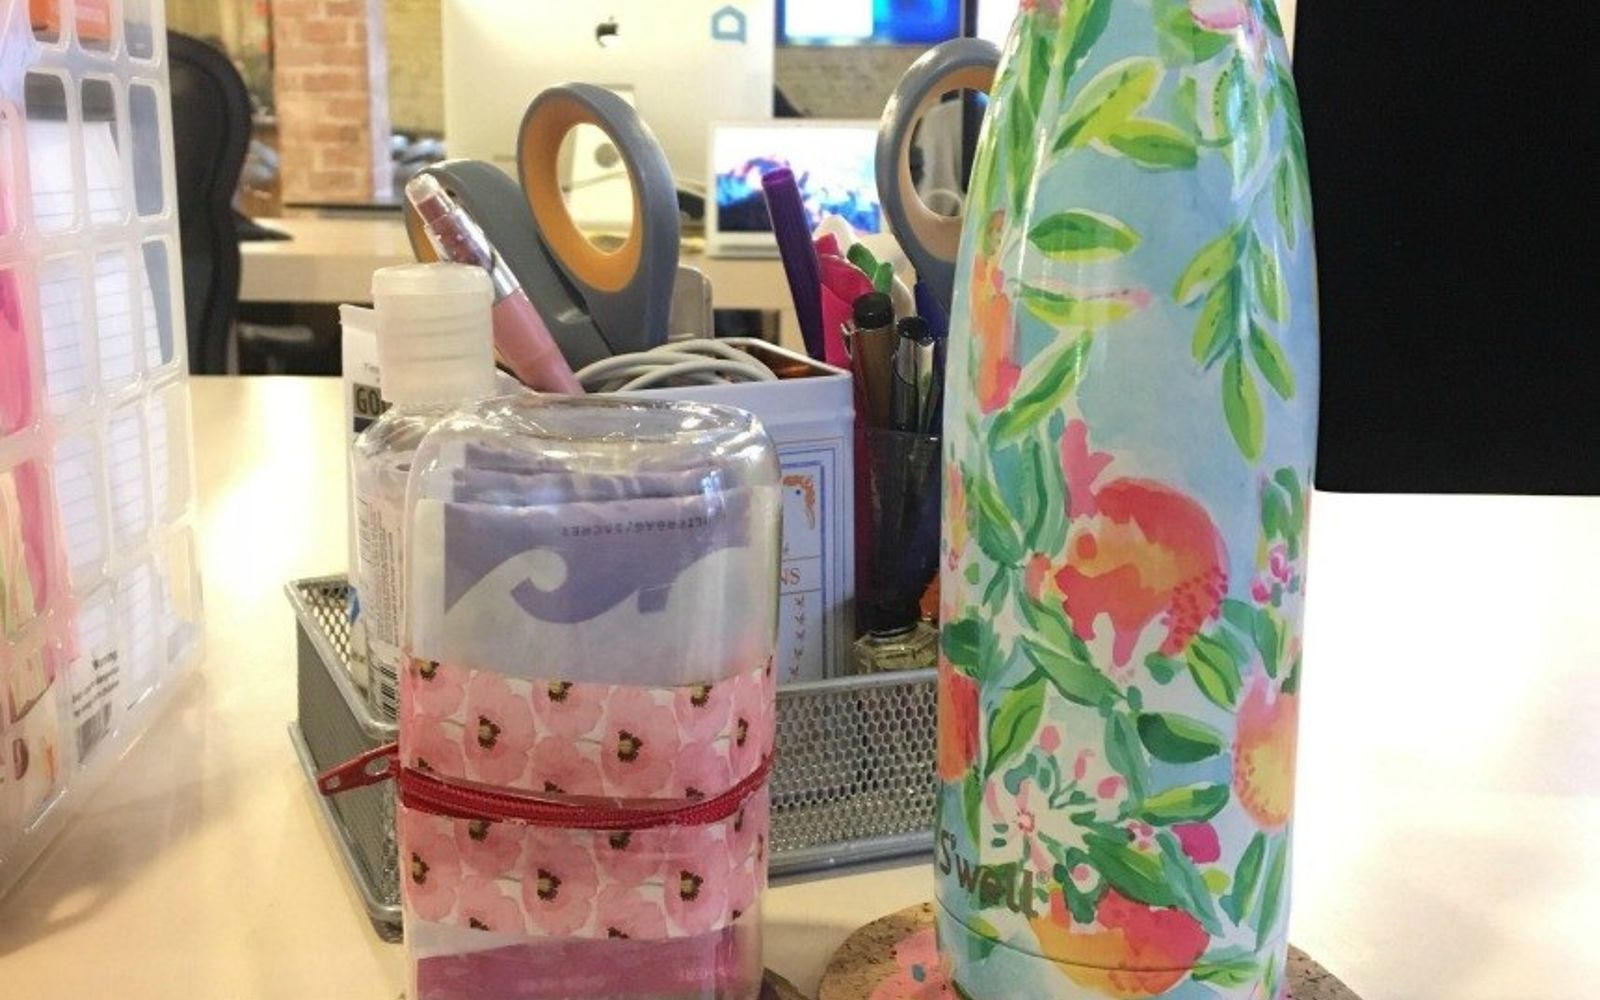 s 30 useful ways to reuse plastic bottles, Craft a zipper pouch